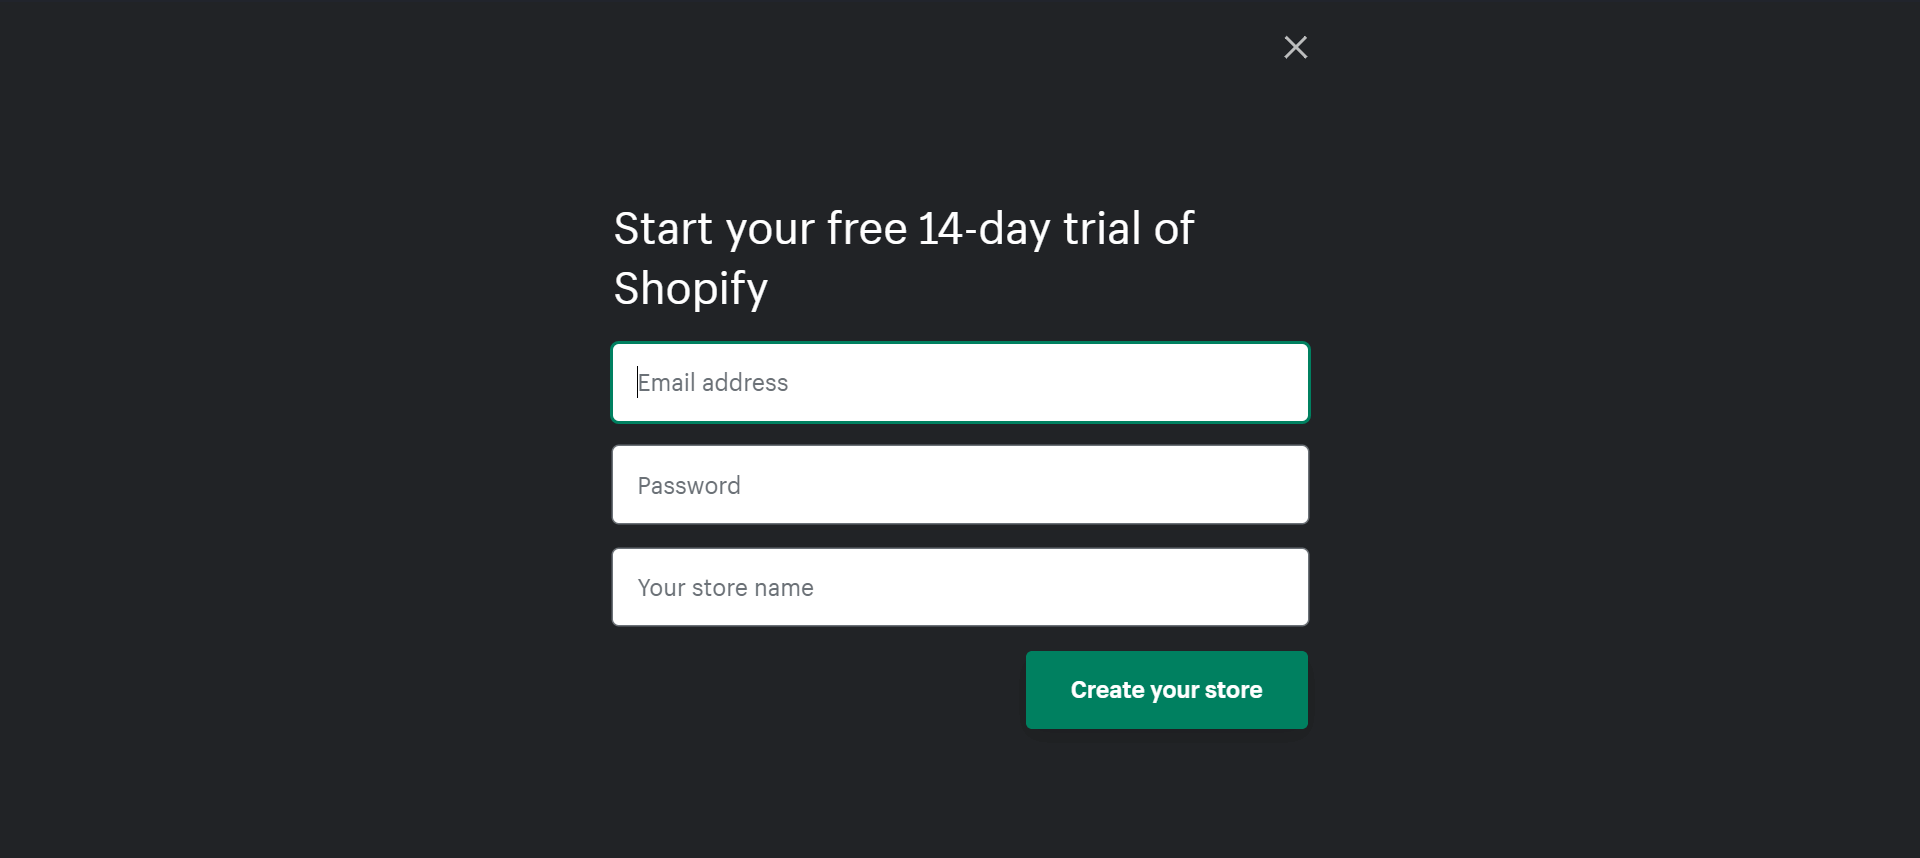 Shopify sign-up form